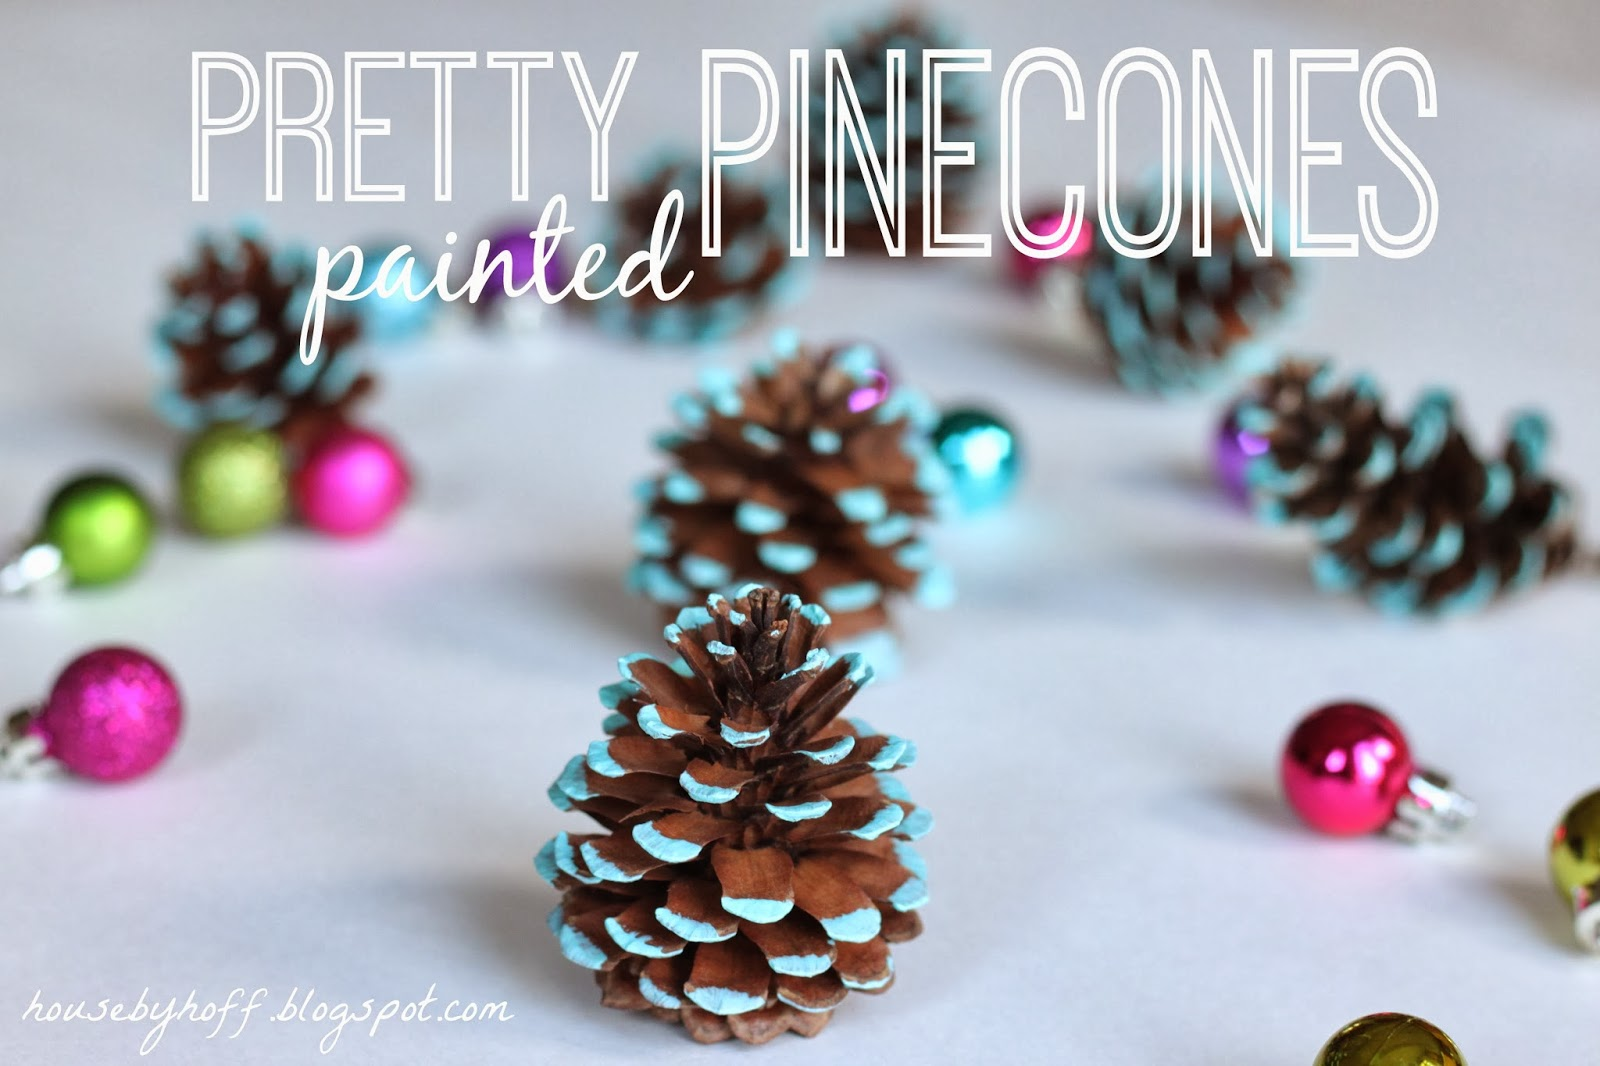 Pretty painted pine cones house by hoff for How to paint pine cones for christmas